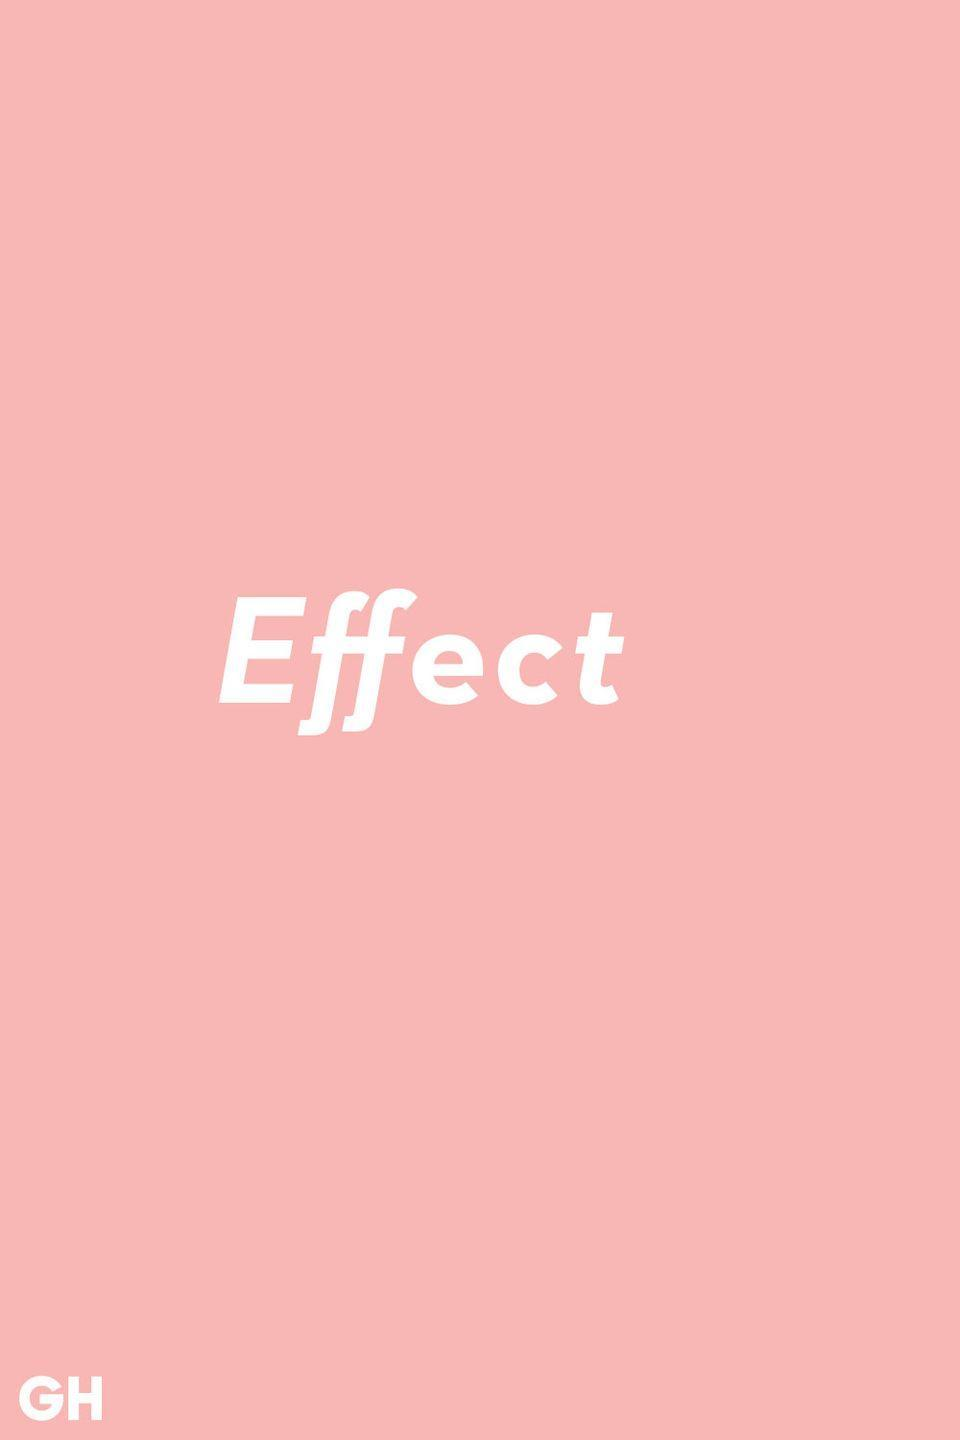 """<p>The simplest way to remember this one is that effect is a noun (ex: a special <strong>effect</strong>). Affect is the verb.</p><p><strong>RELATED:</strong> <a href=""""https://www.goodhousekeeping.com/life/g25712934/new-dictionary-words/"""" rel=""""nofollow noopener"""" target=""""_blank"""" data-ylk=""""slk:18 Words Added to the Dictionary in 2018"""" class=""""link rapid-noclick-resp"""">18 Words Added to the Dictionary in 2018</a></p>"""